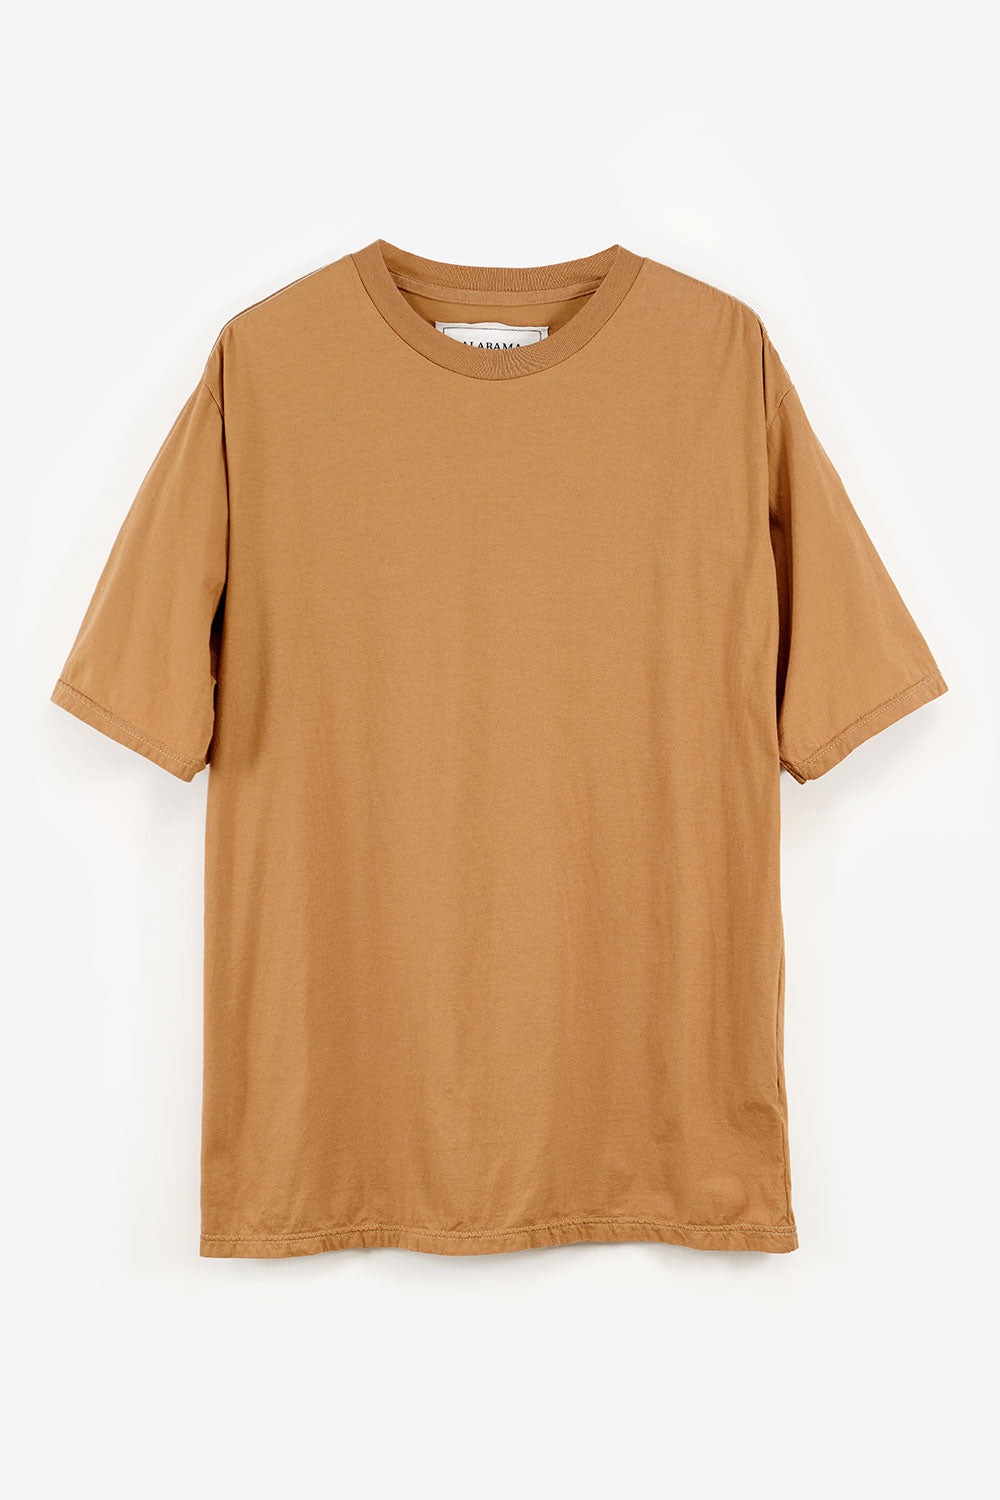 Alabama Chanin Boyfriend Tee Oversized Organic Cotton Light Brown Shirt